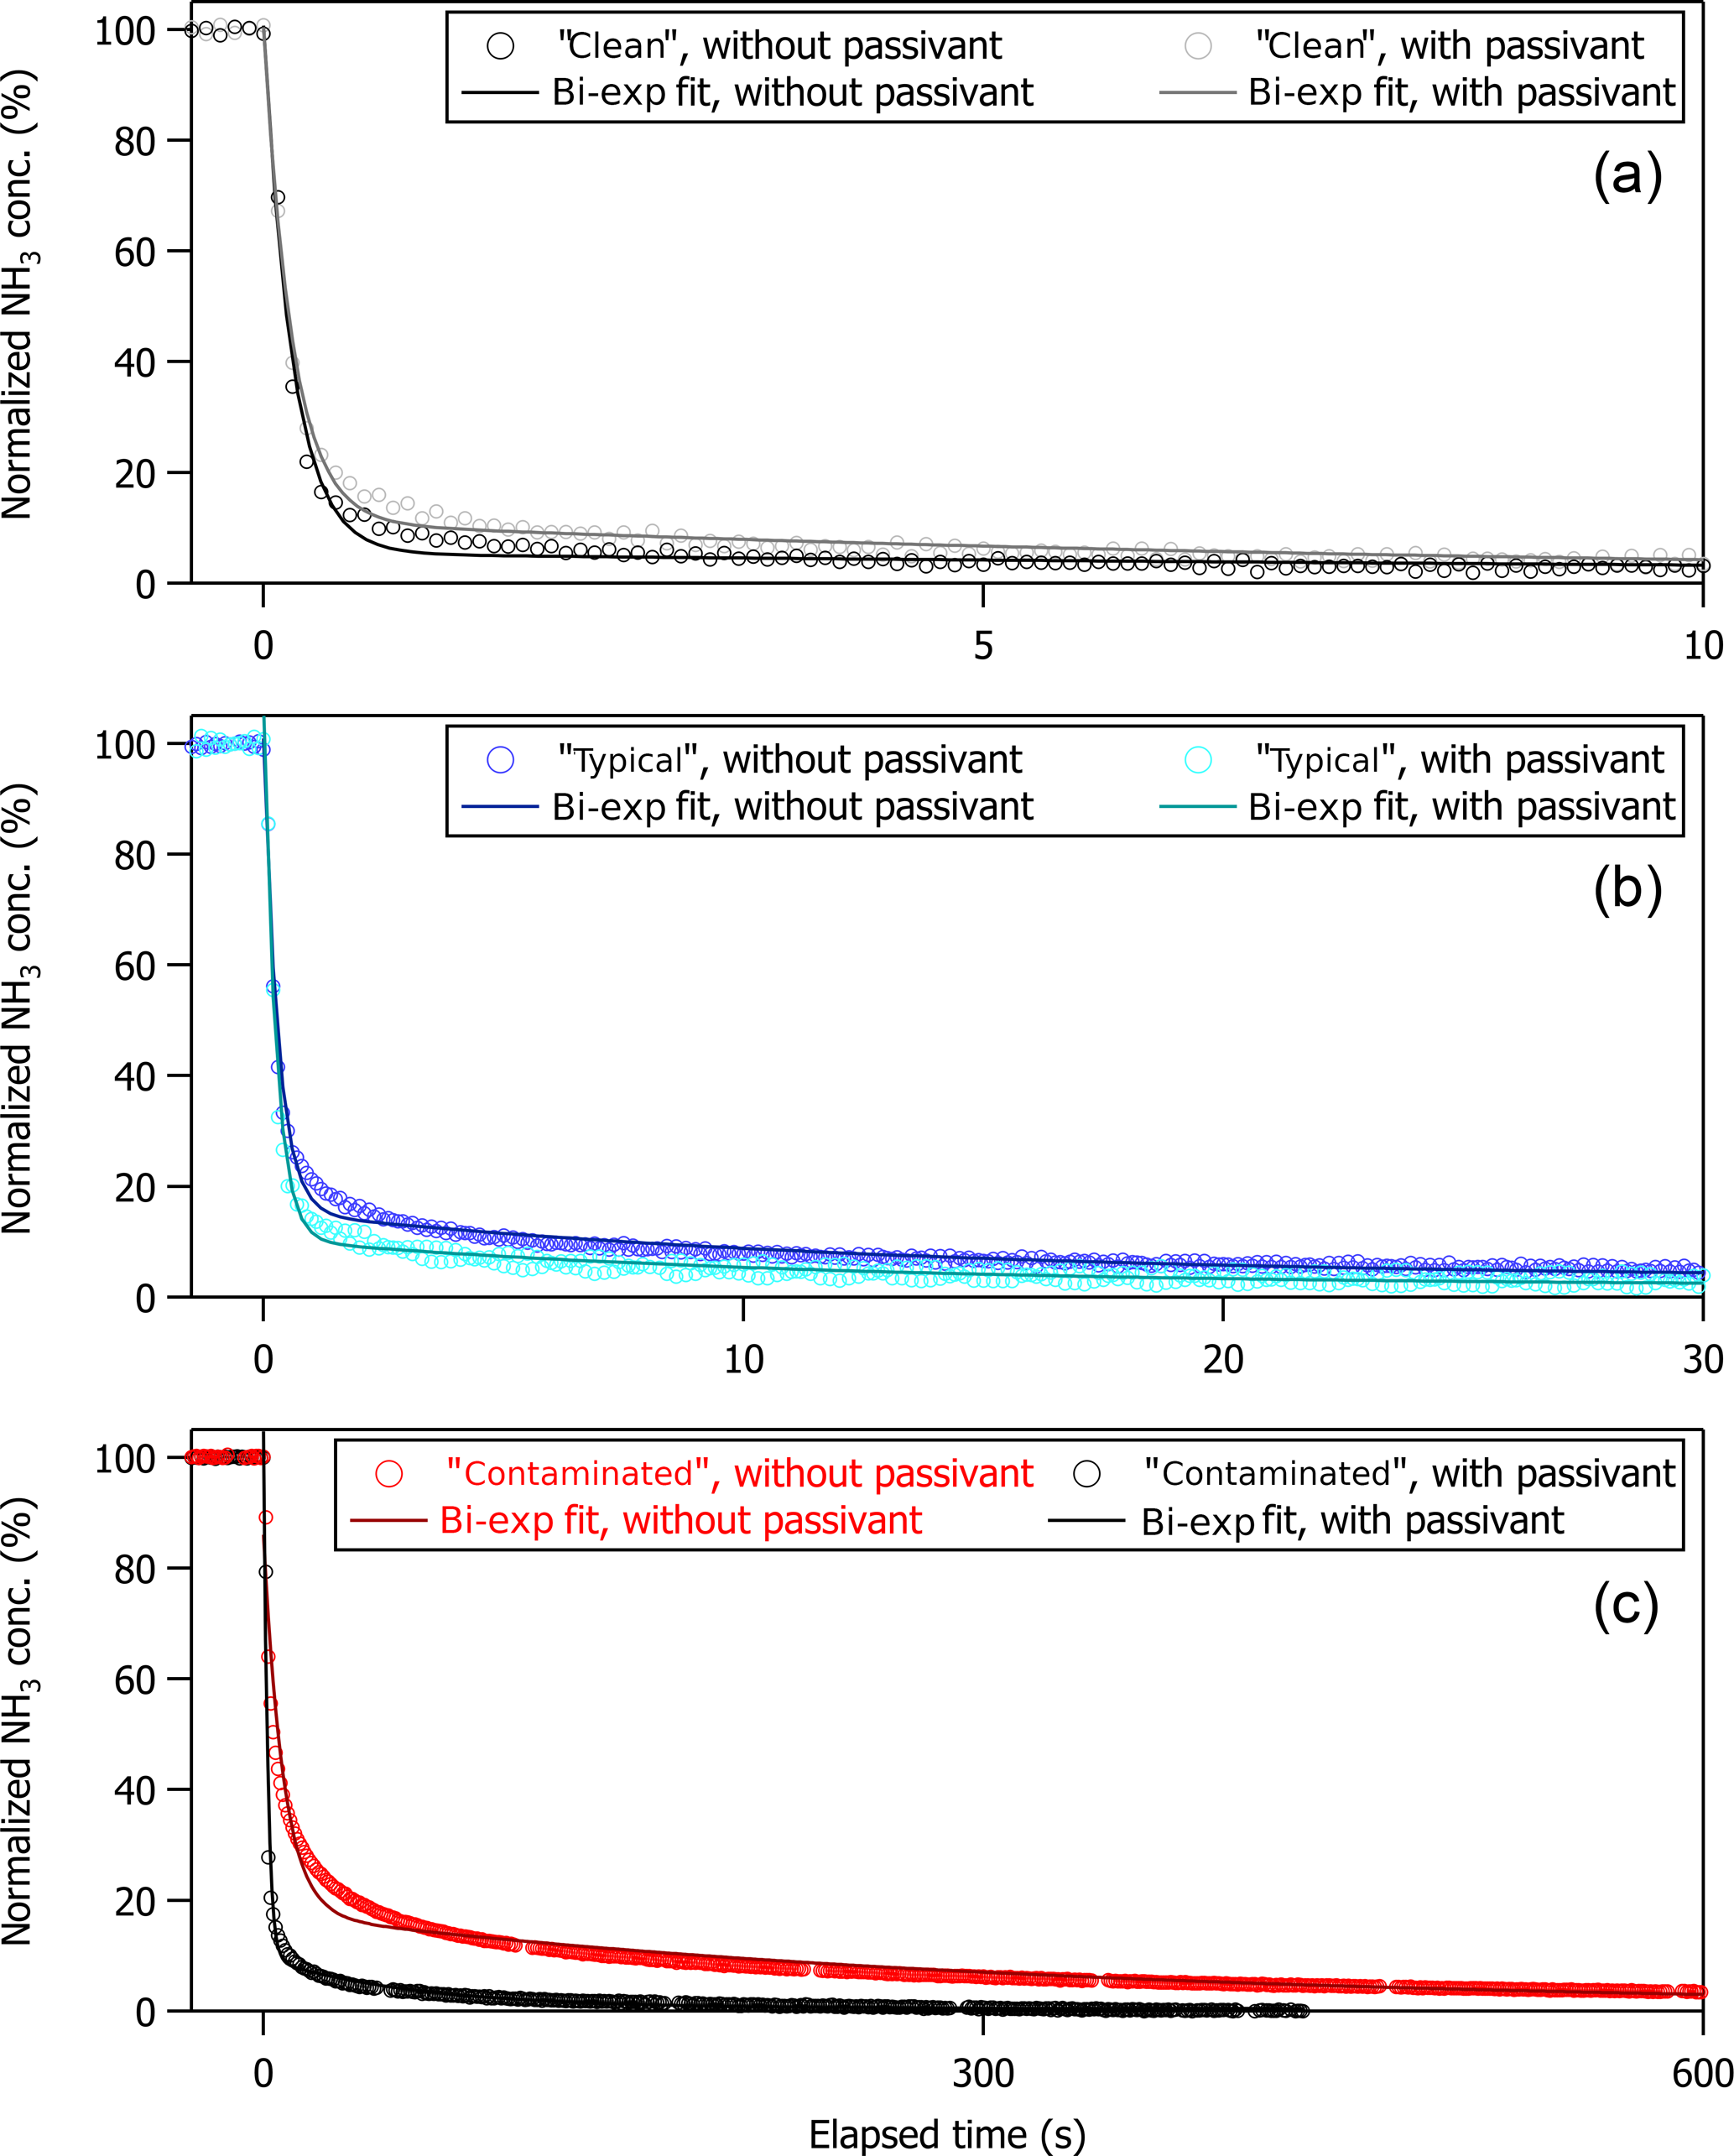 AMT - Evaluation of ambient ammonia measurements from a